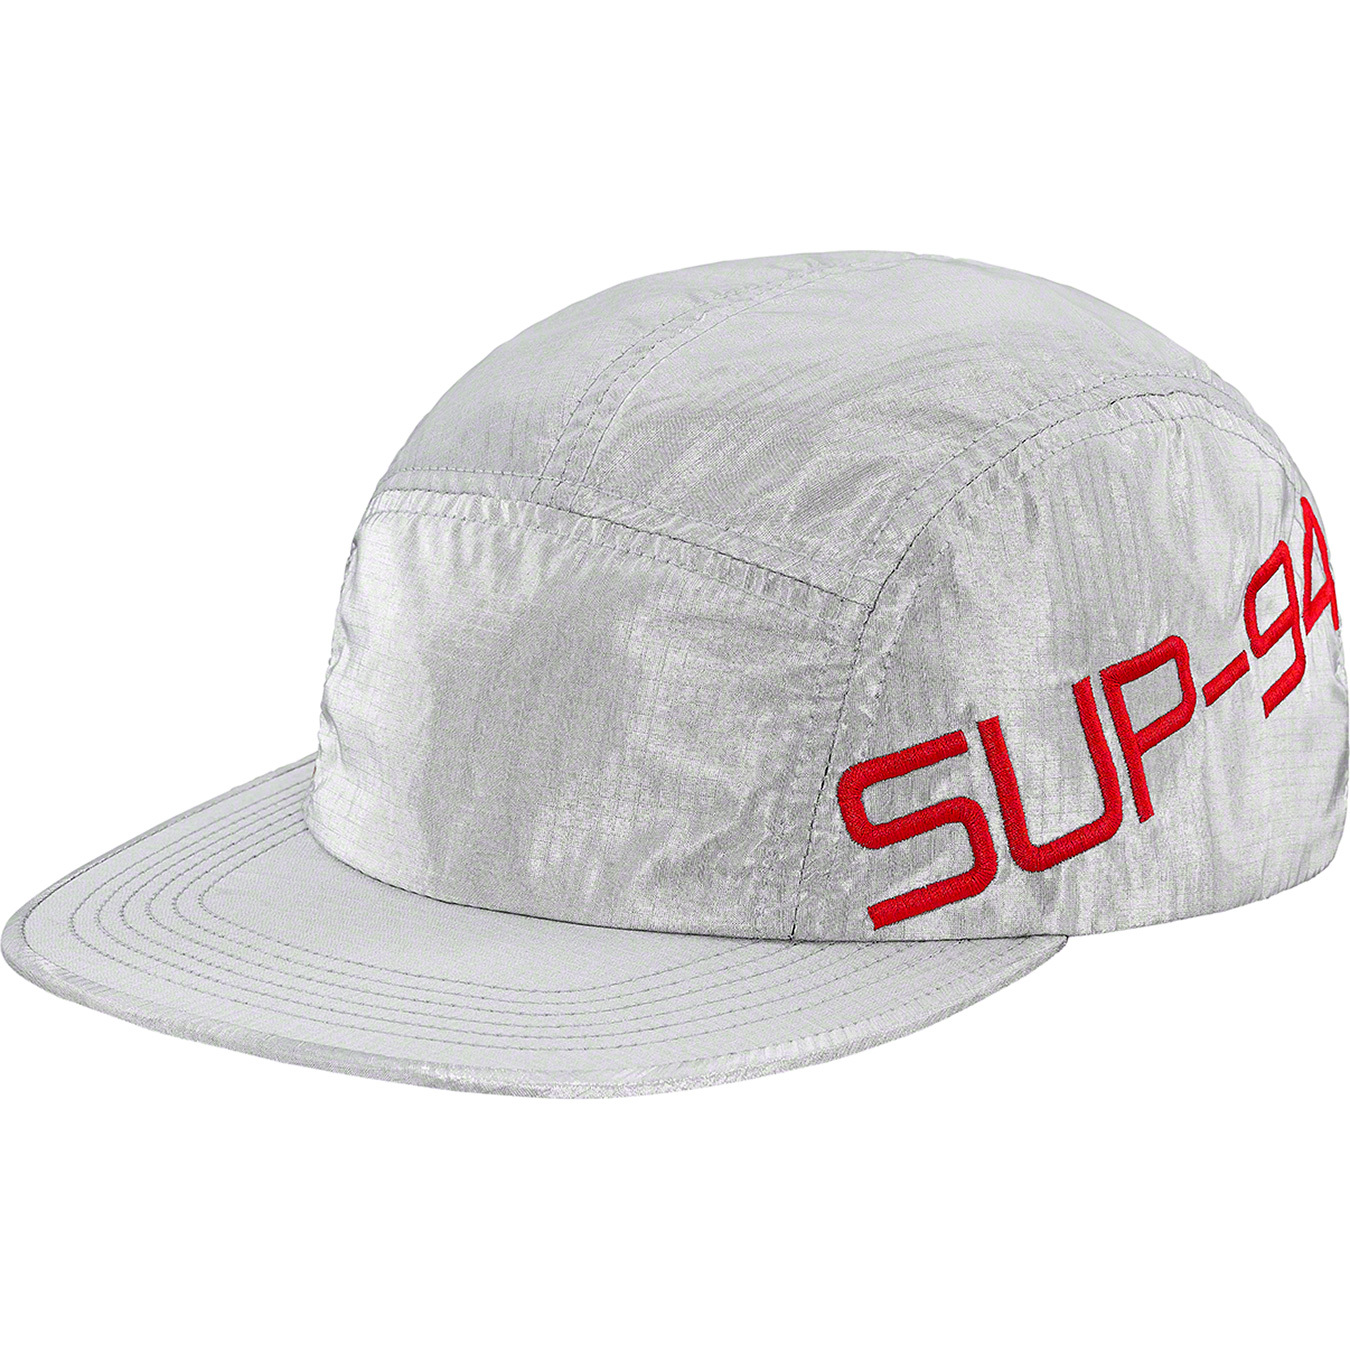 supreme-19ss-spring-summer-side-logo-camp-cap